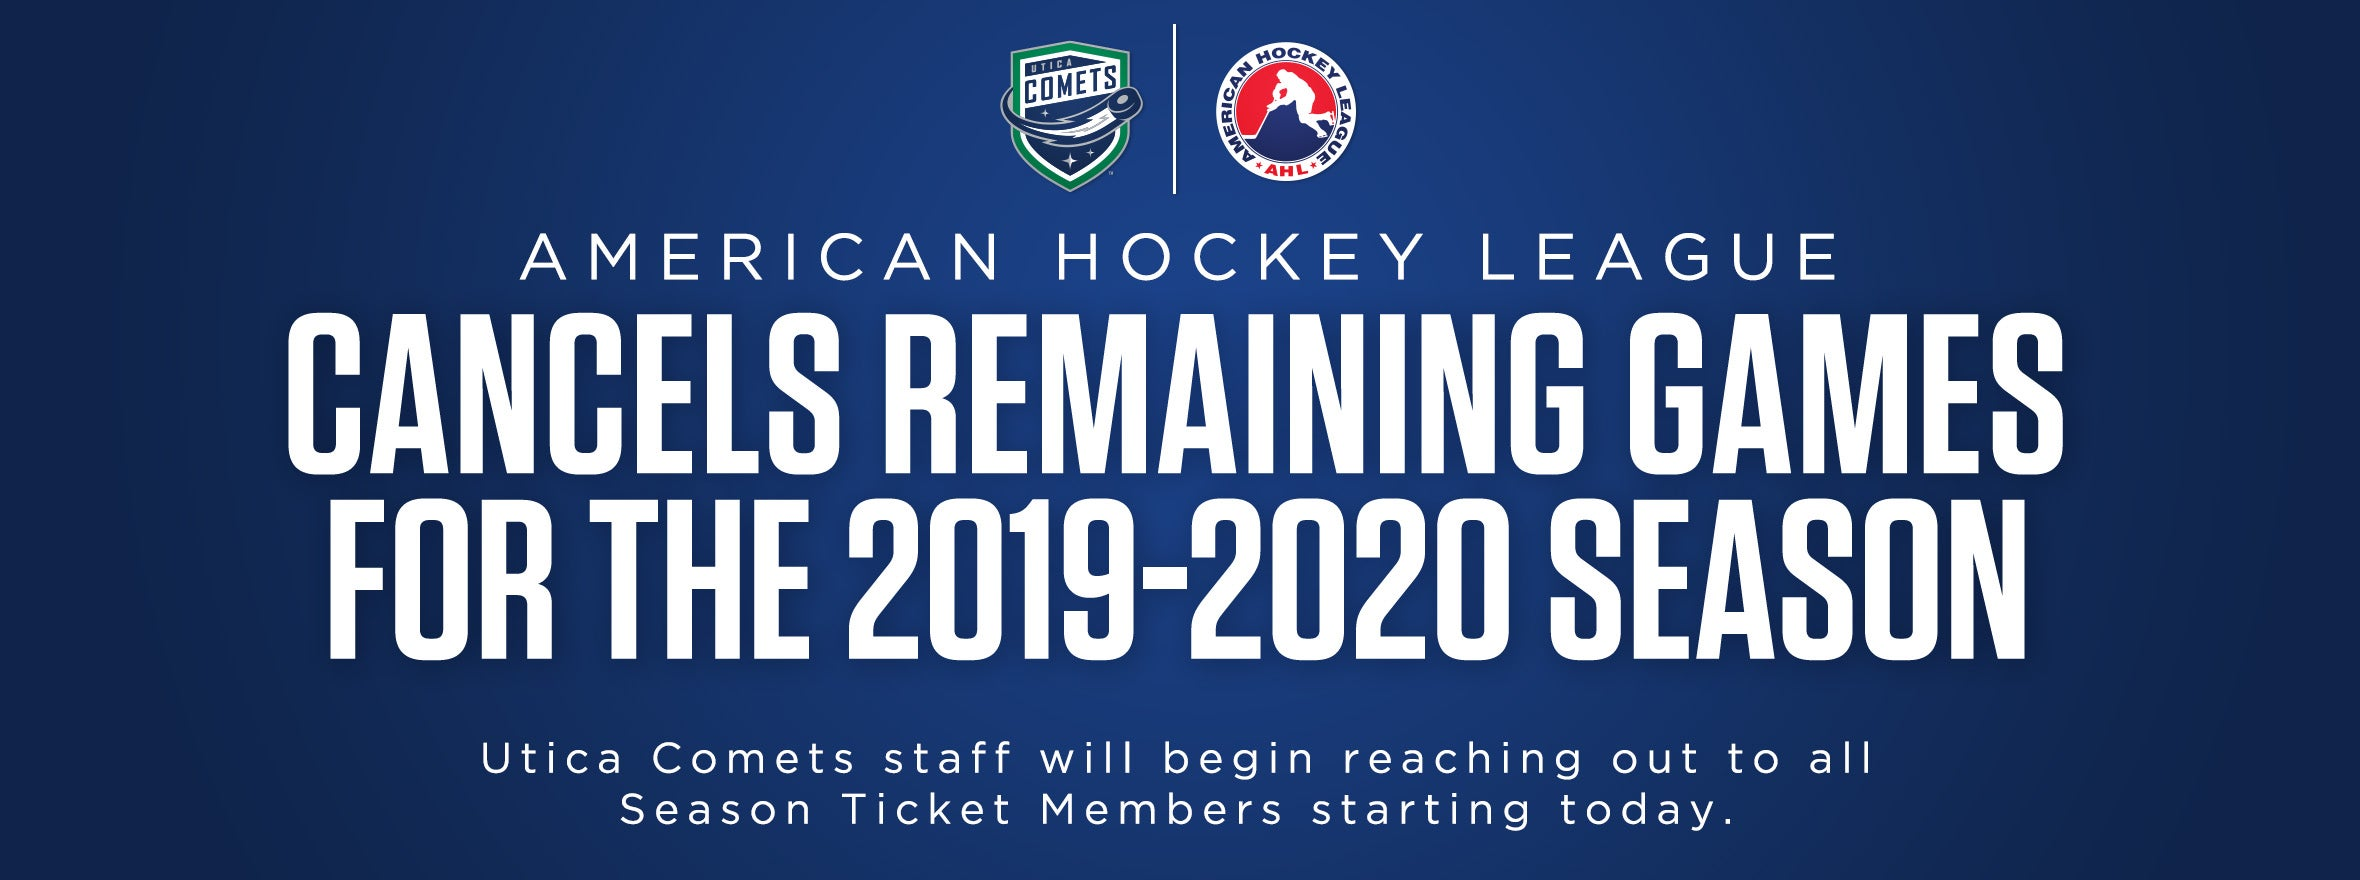 AMERICAN HOCKEY LEAGUE CANCELS REMAINDER OF 2019-20 SEASON